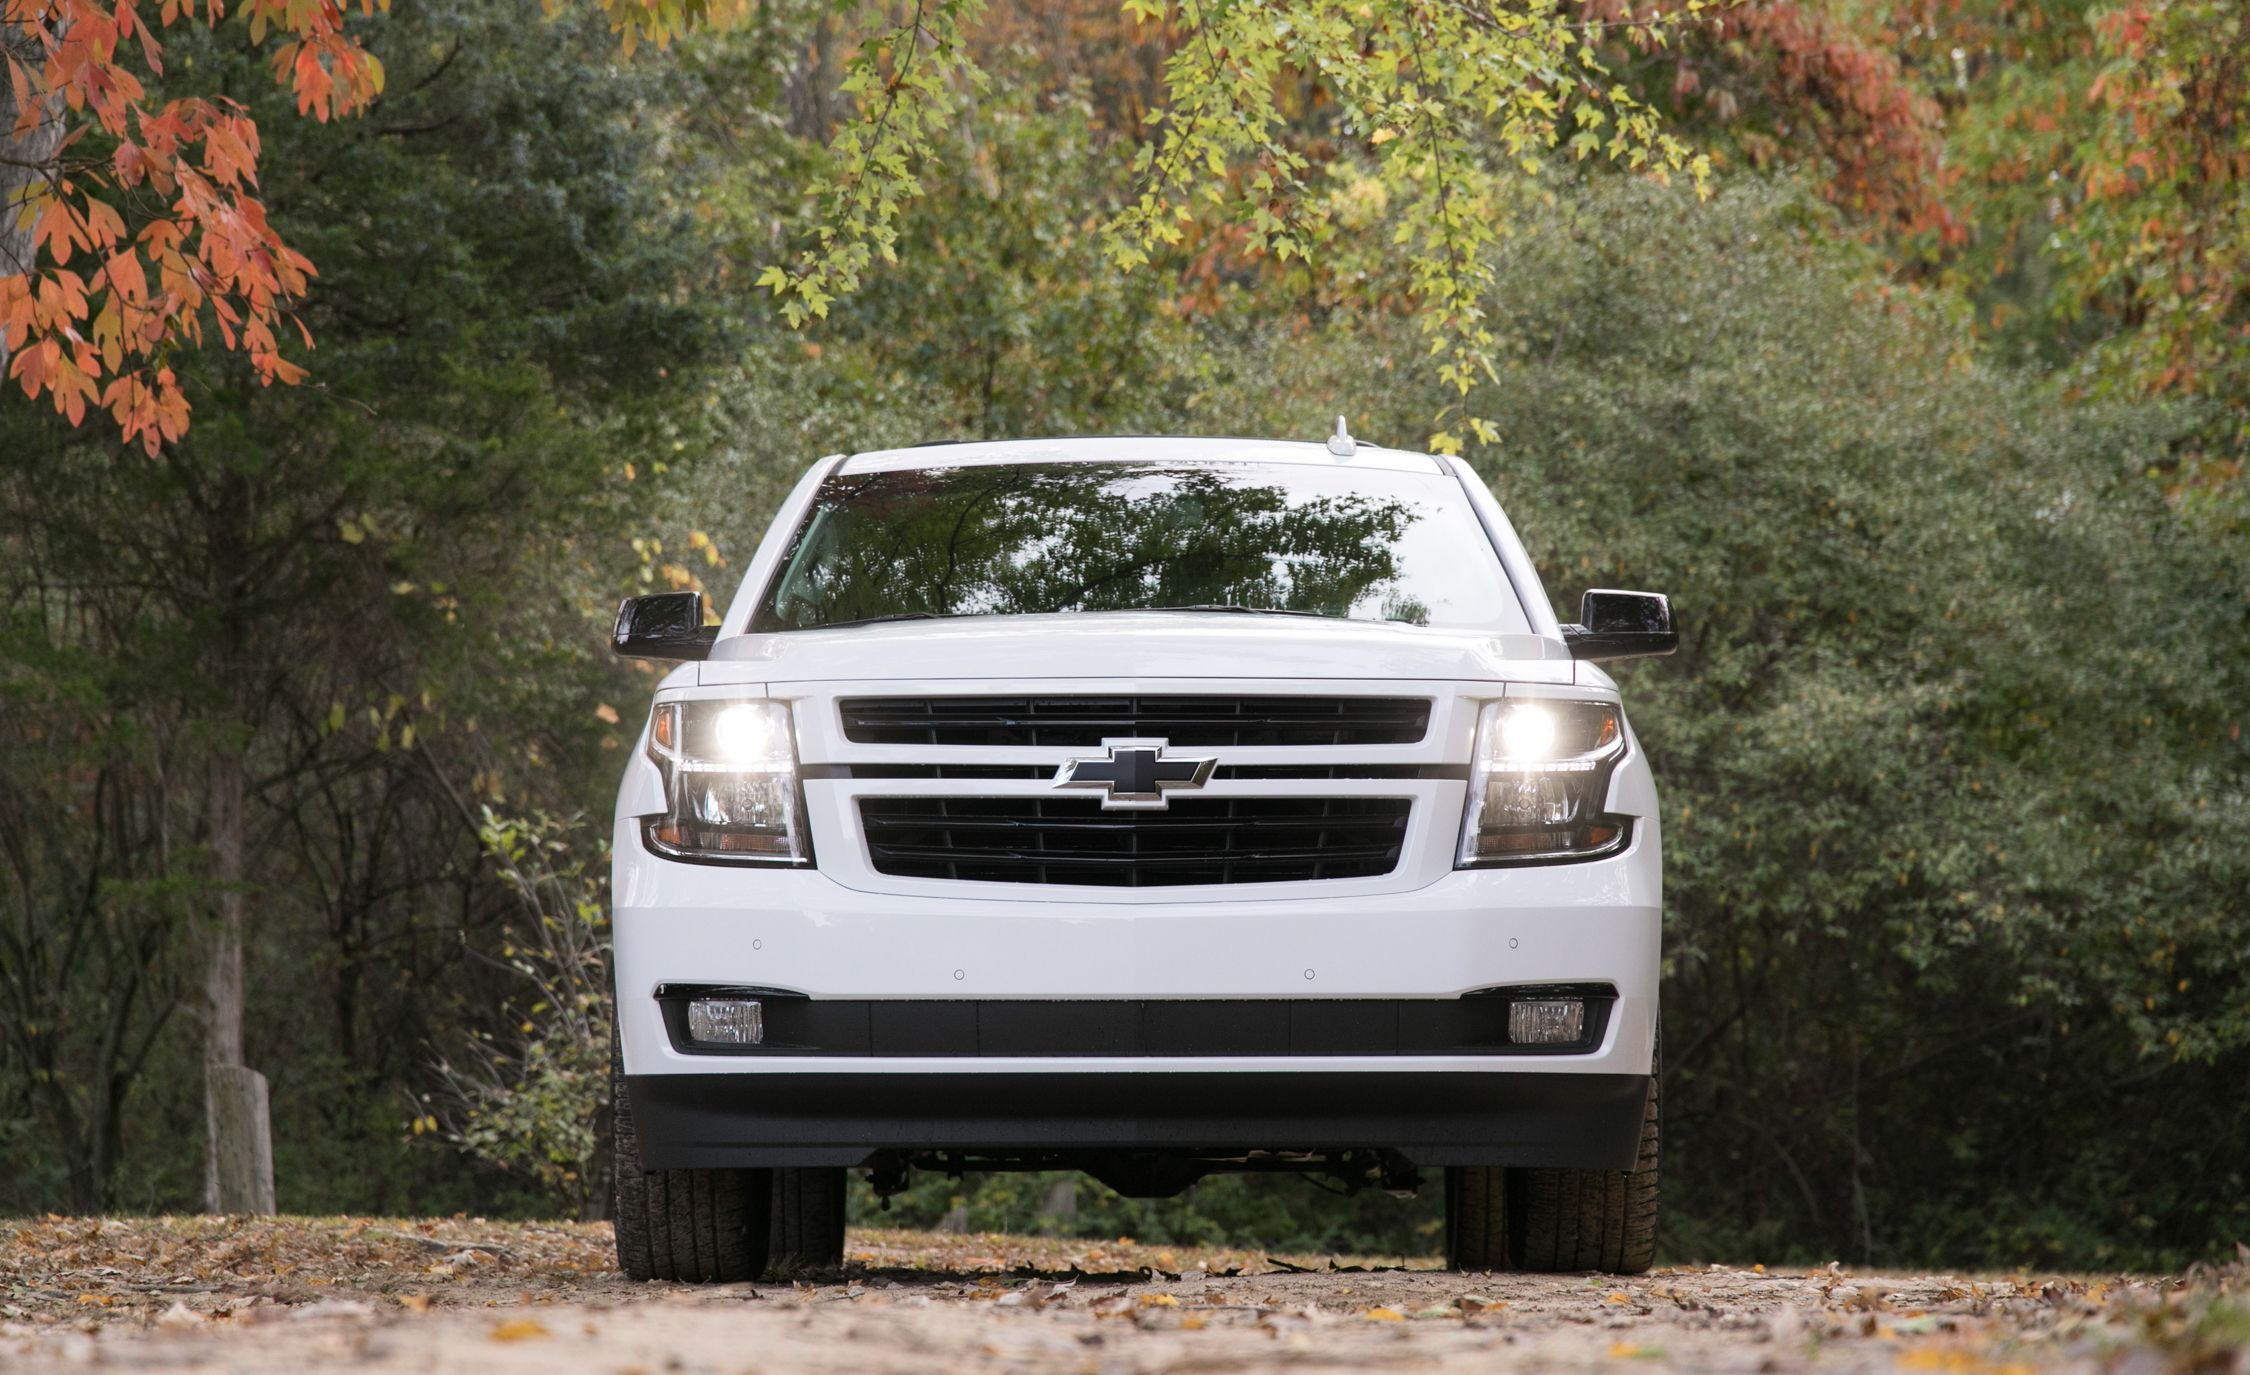 Chevrolet Tahoe Reviews | Chevrolet Tahoe Price, Photos, and Specs | Car  and Driver